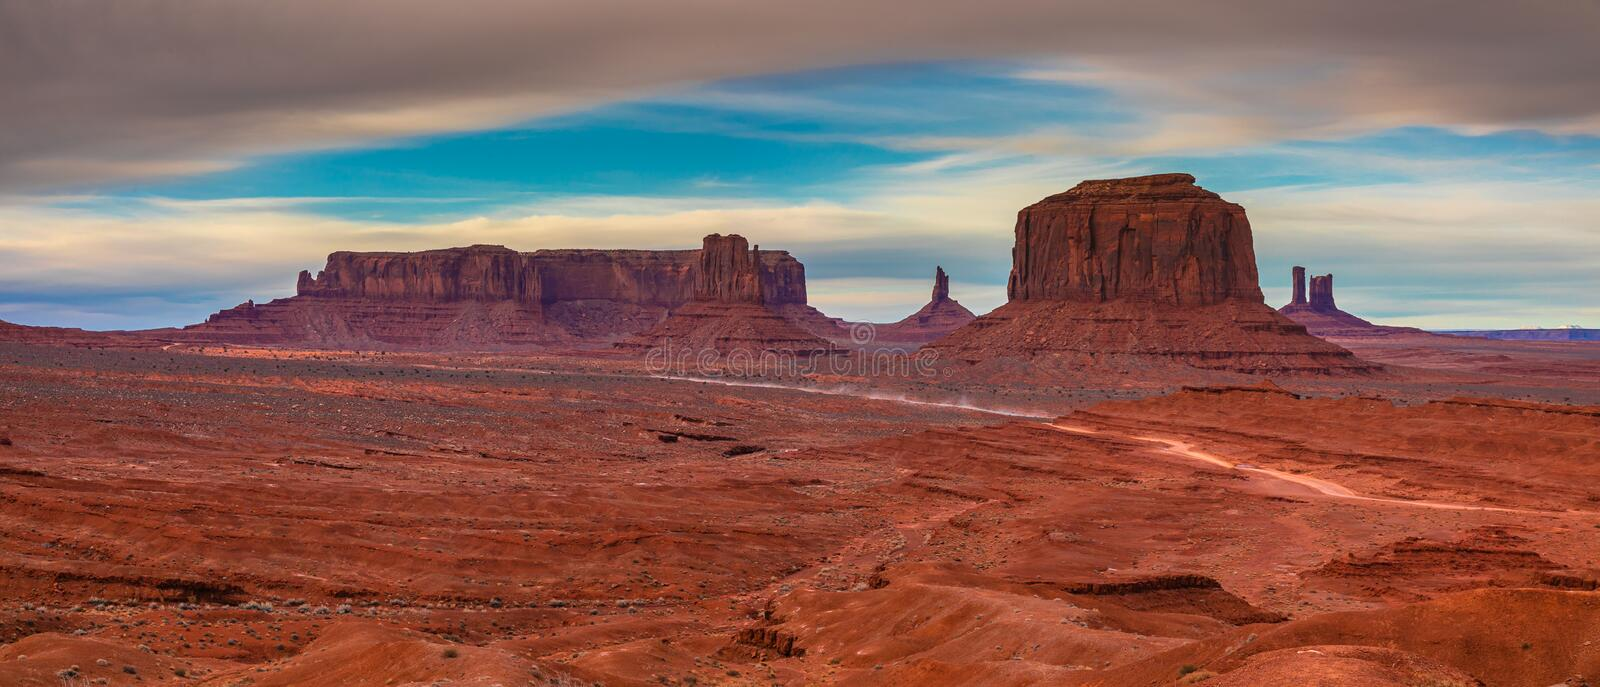 Clouds over Monument Valley, Navajo Land, Utah. A panoramic photo of Monument Valley in a stormy weather. Navajo Land, Utah, USA royalty free stock photos